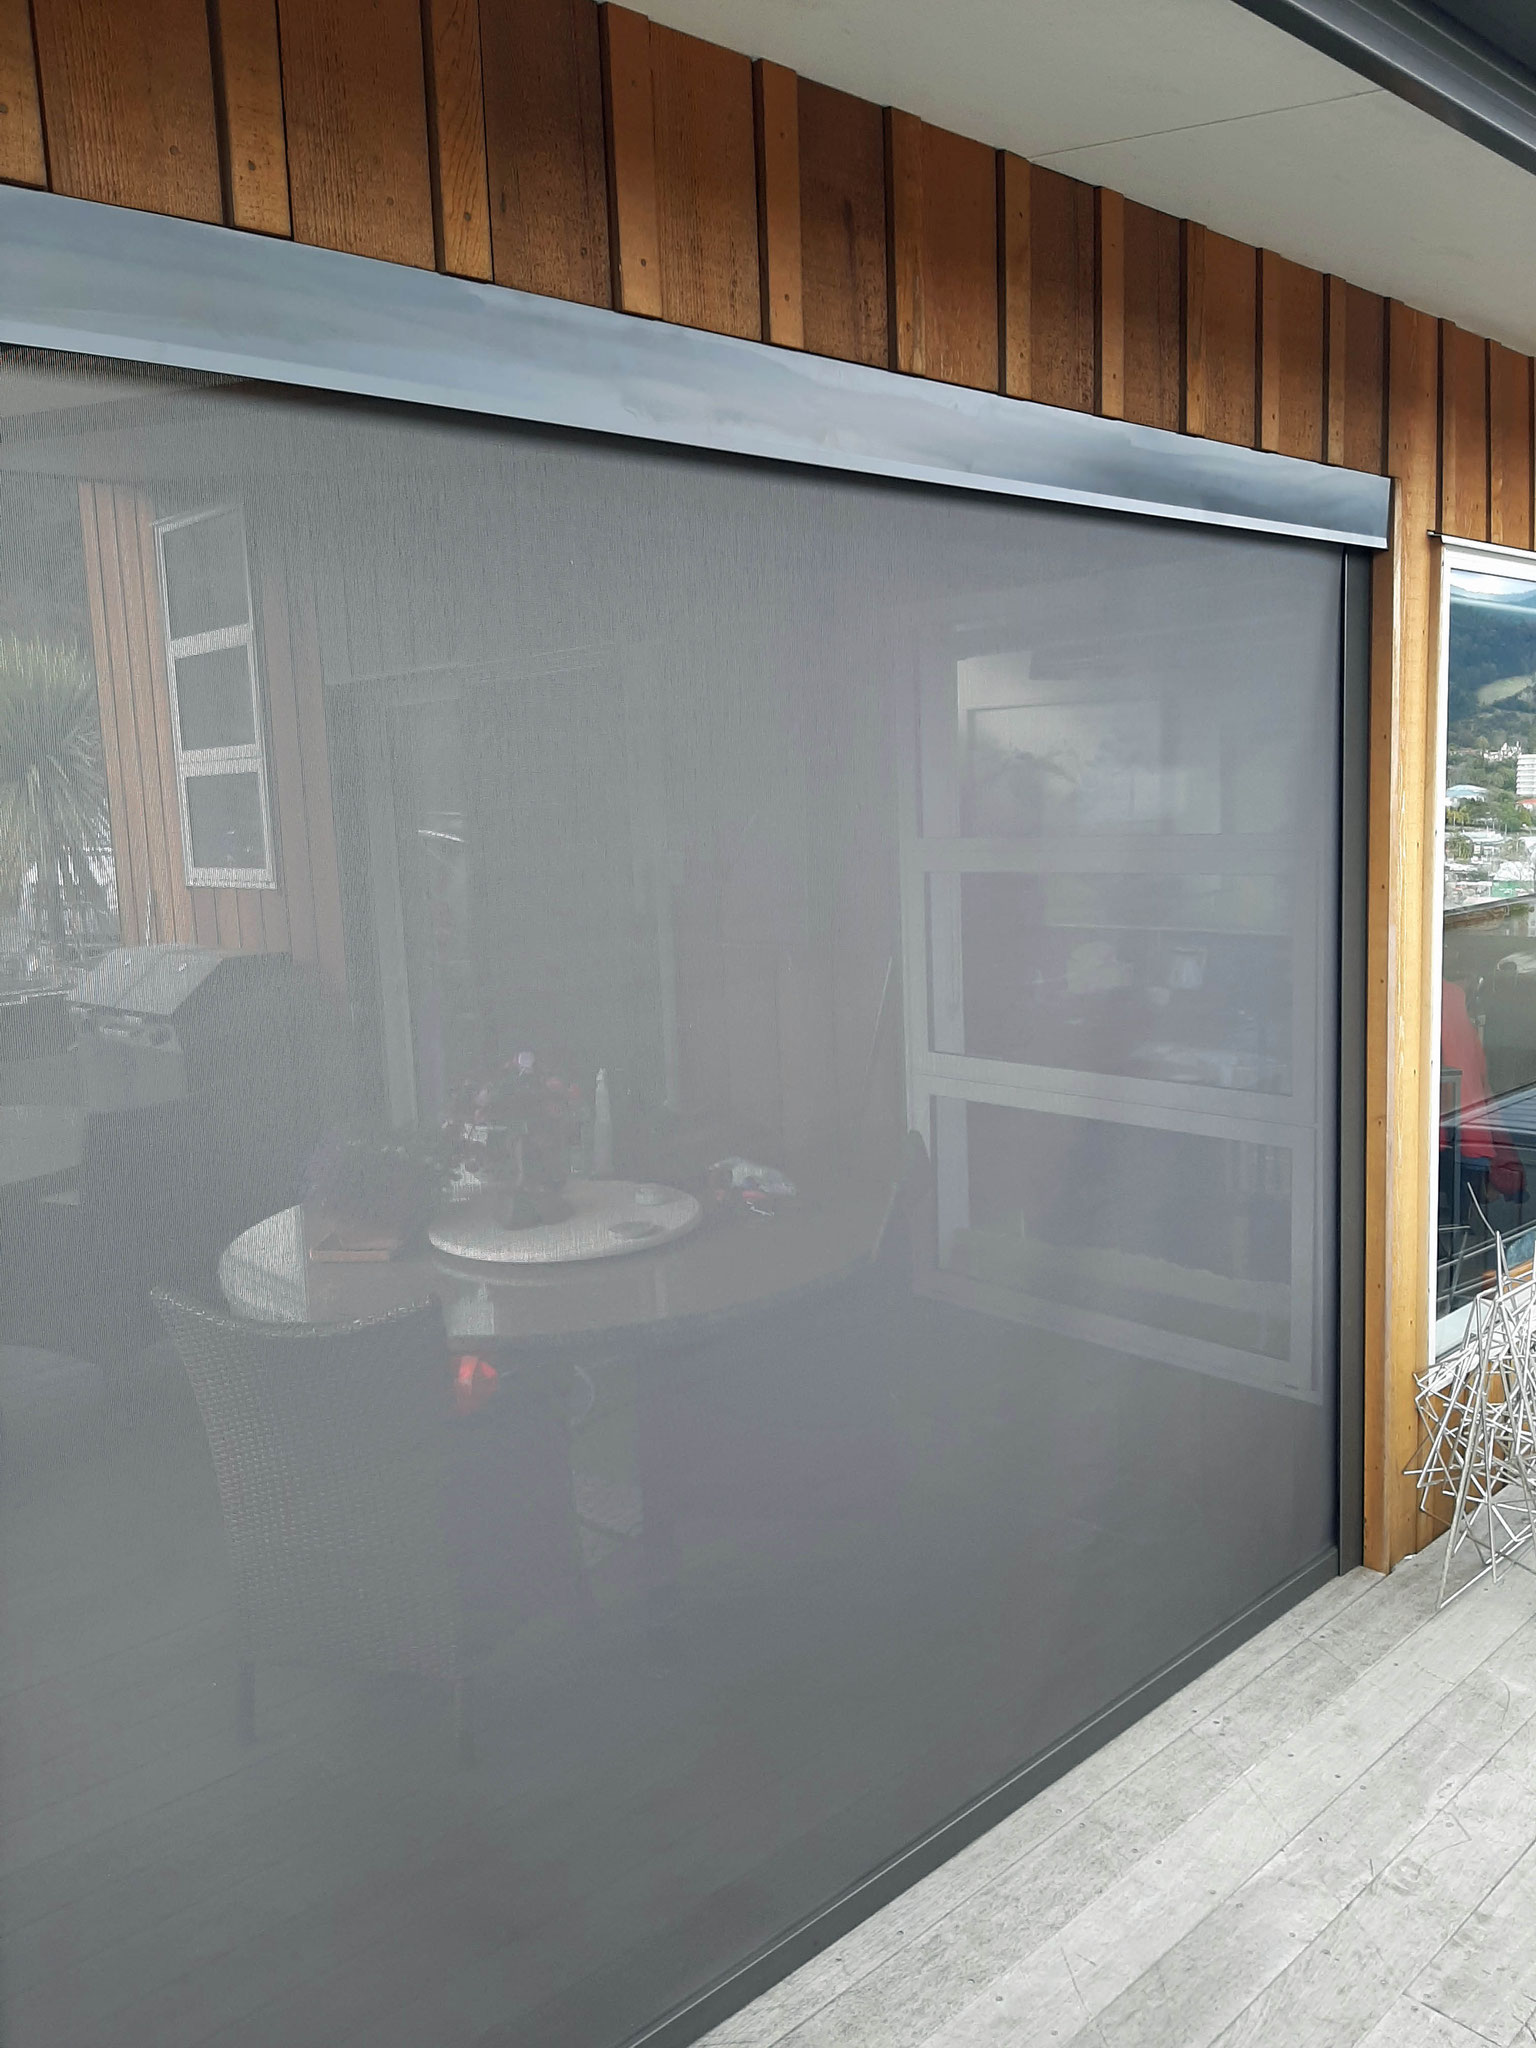 Omni Screen with Flashing & Channels